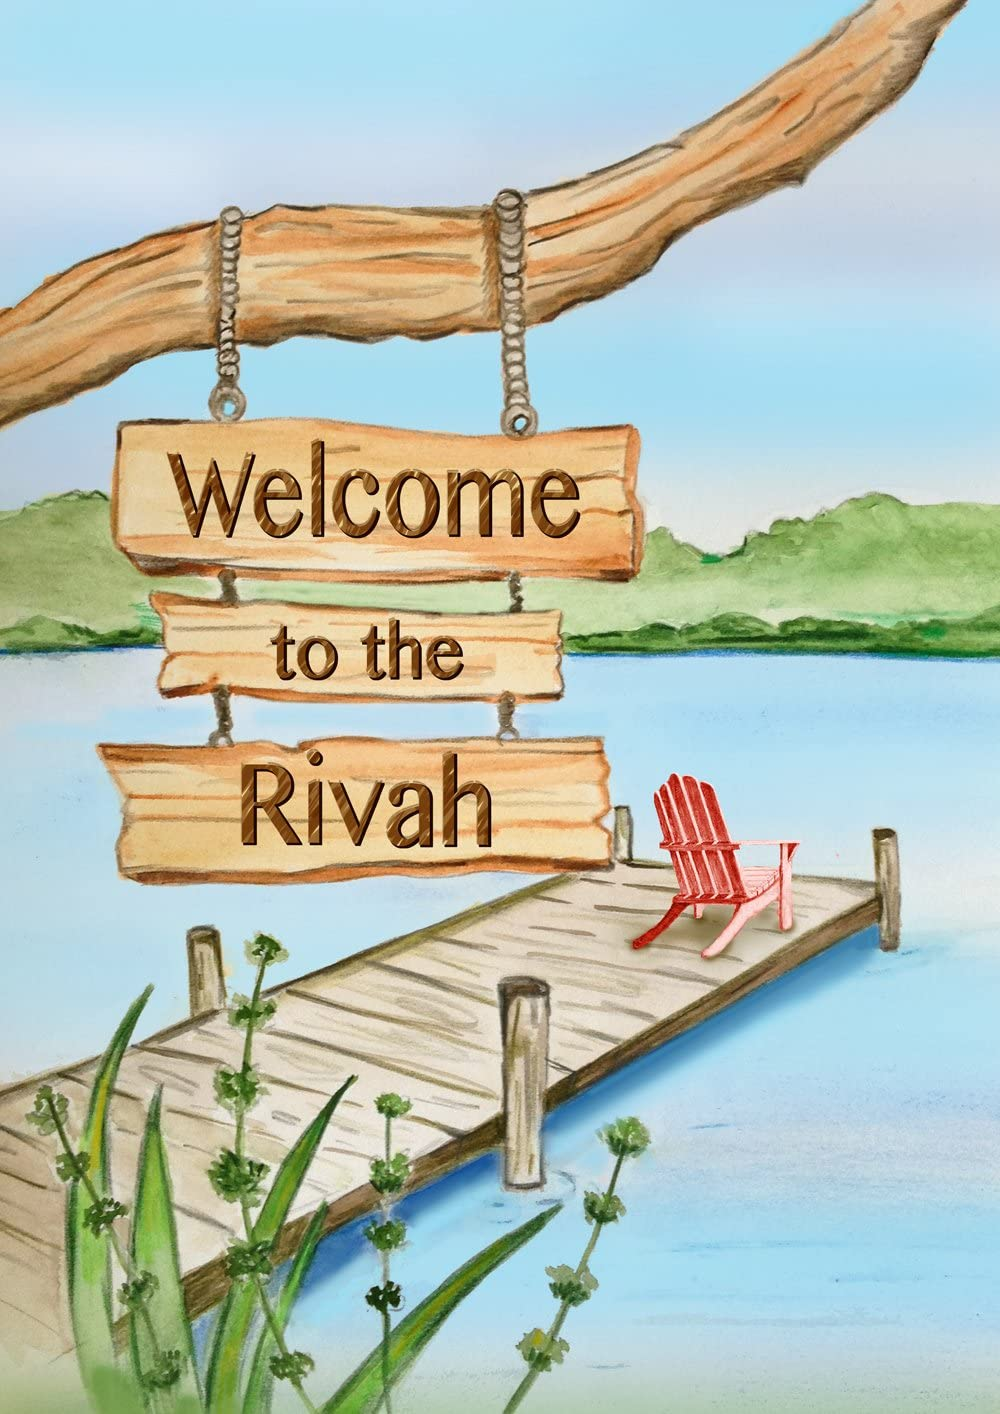 Toland Home Garden Welcome To The Rivah 28 x 40 Inch Decorative Funny Summer River Adirondack Vacation House Flag